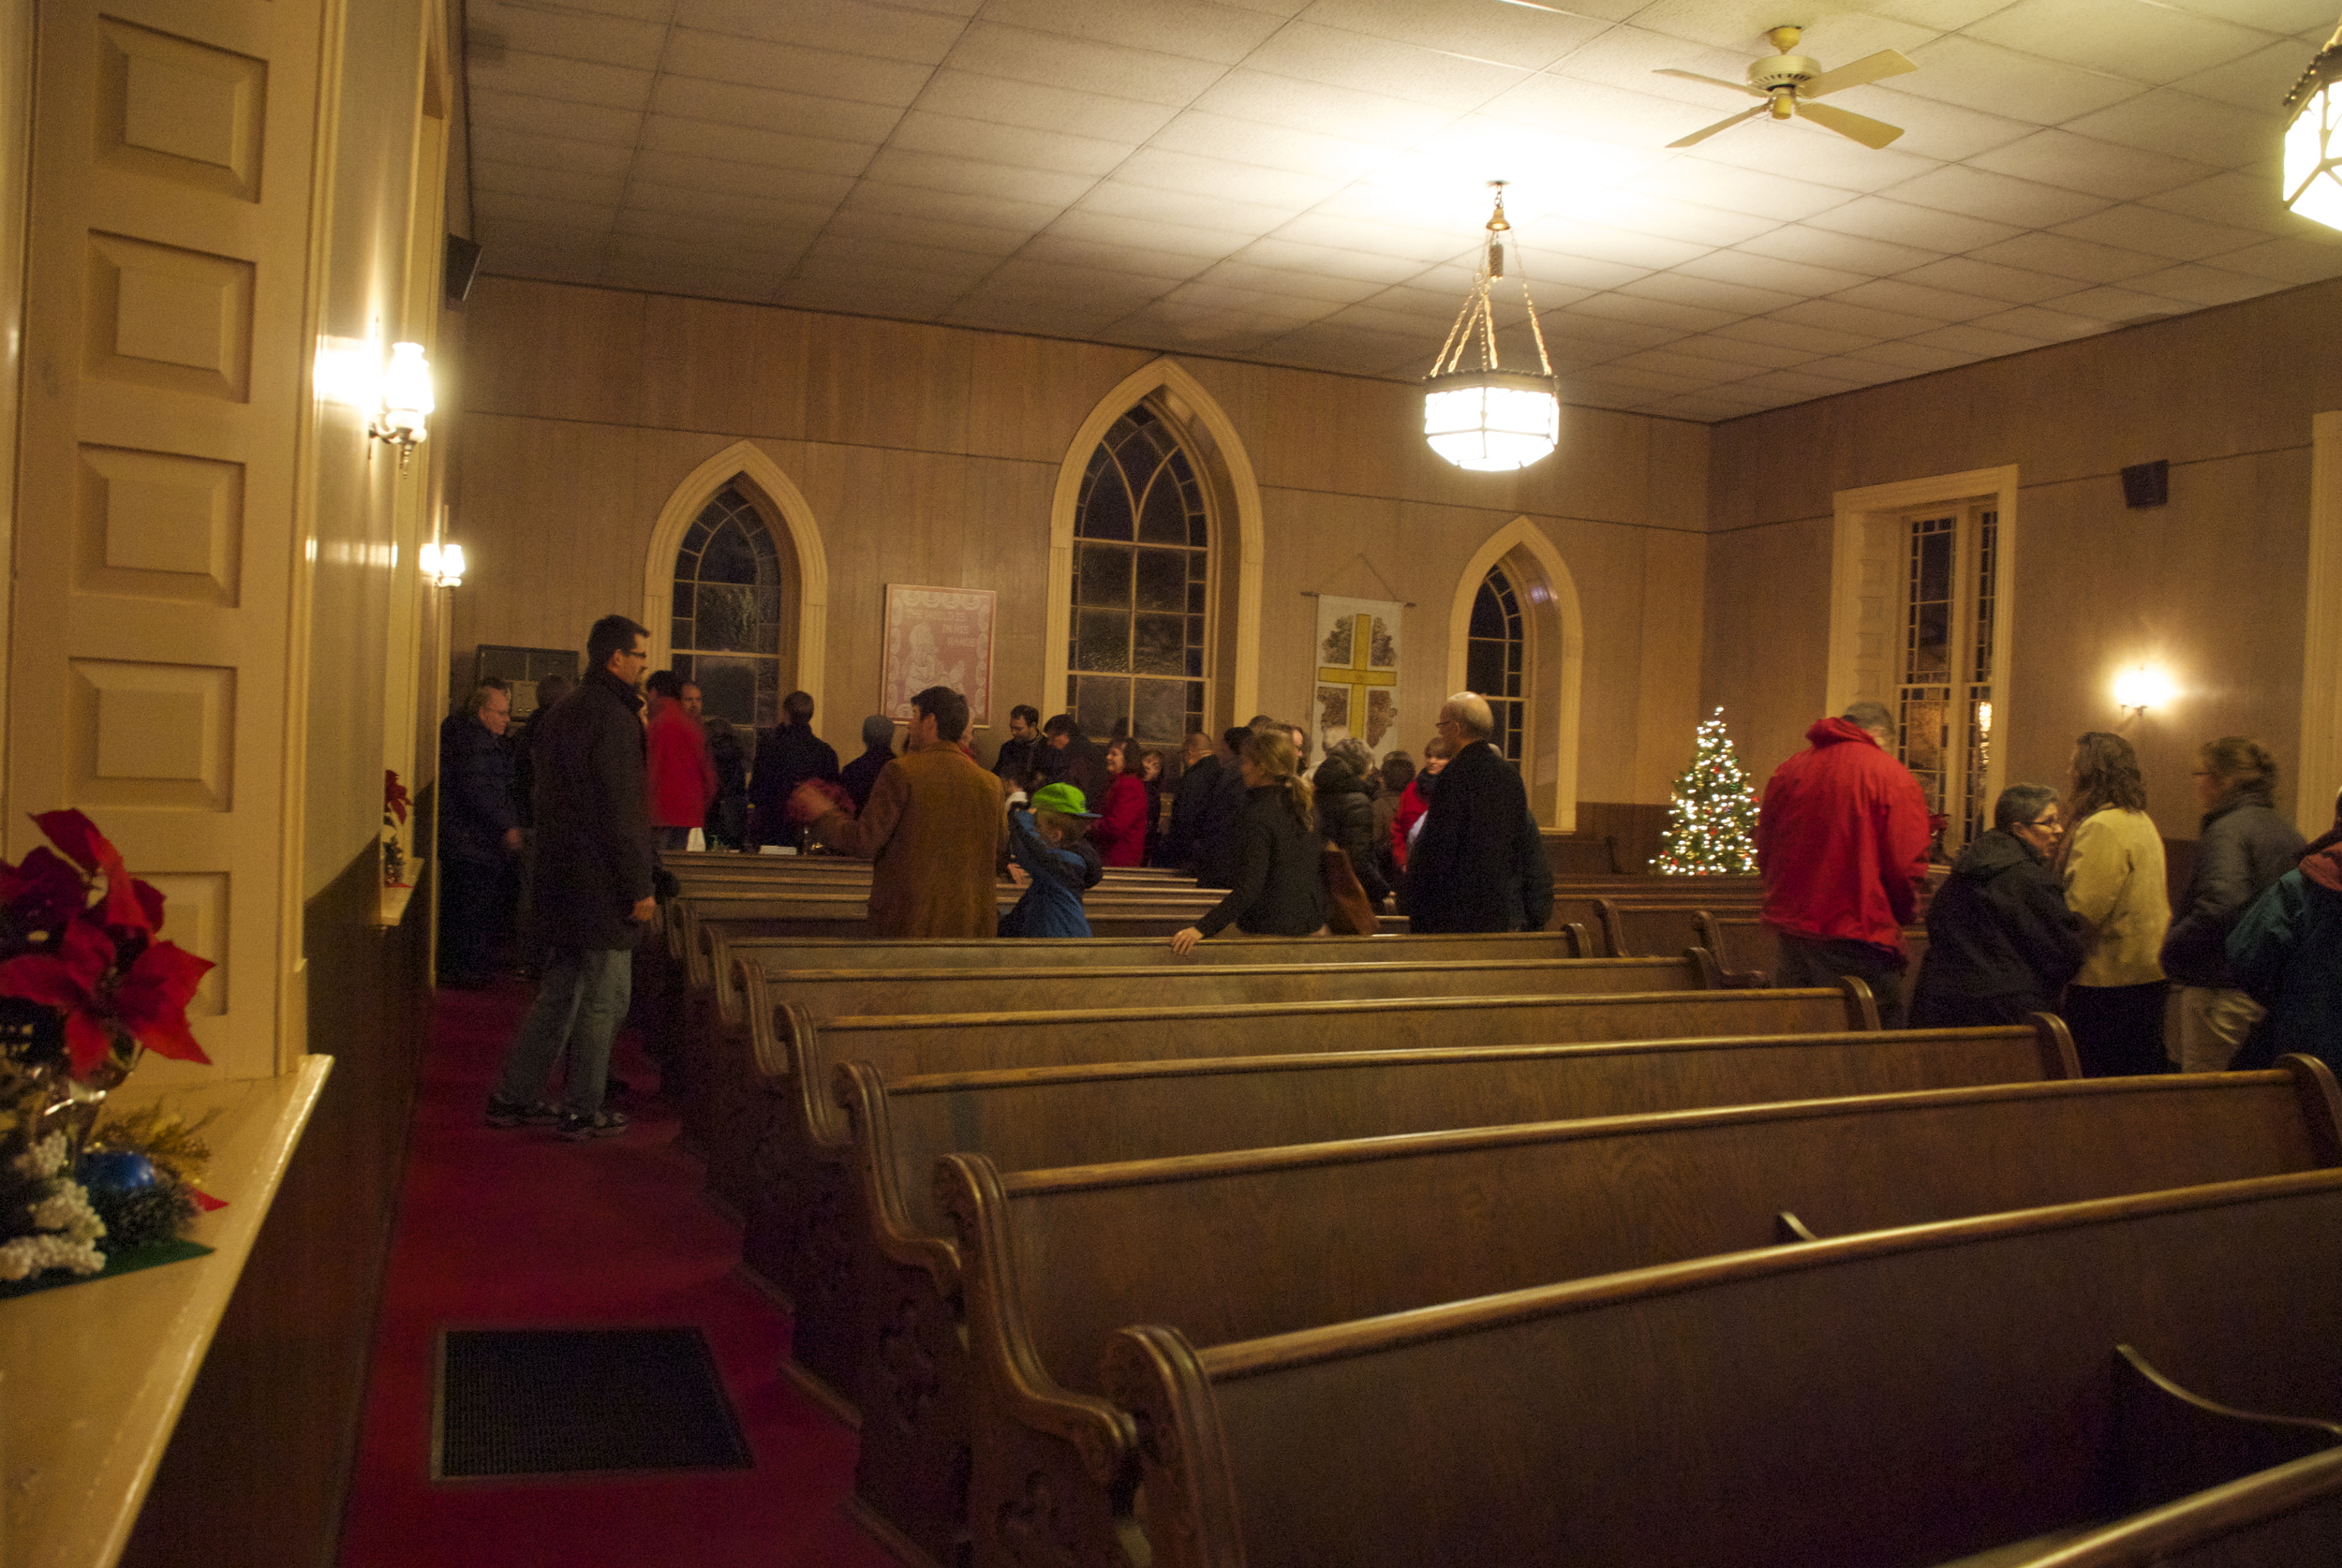 Part of the audience leaving the sanctuary.